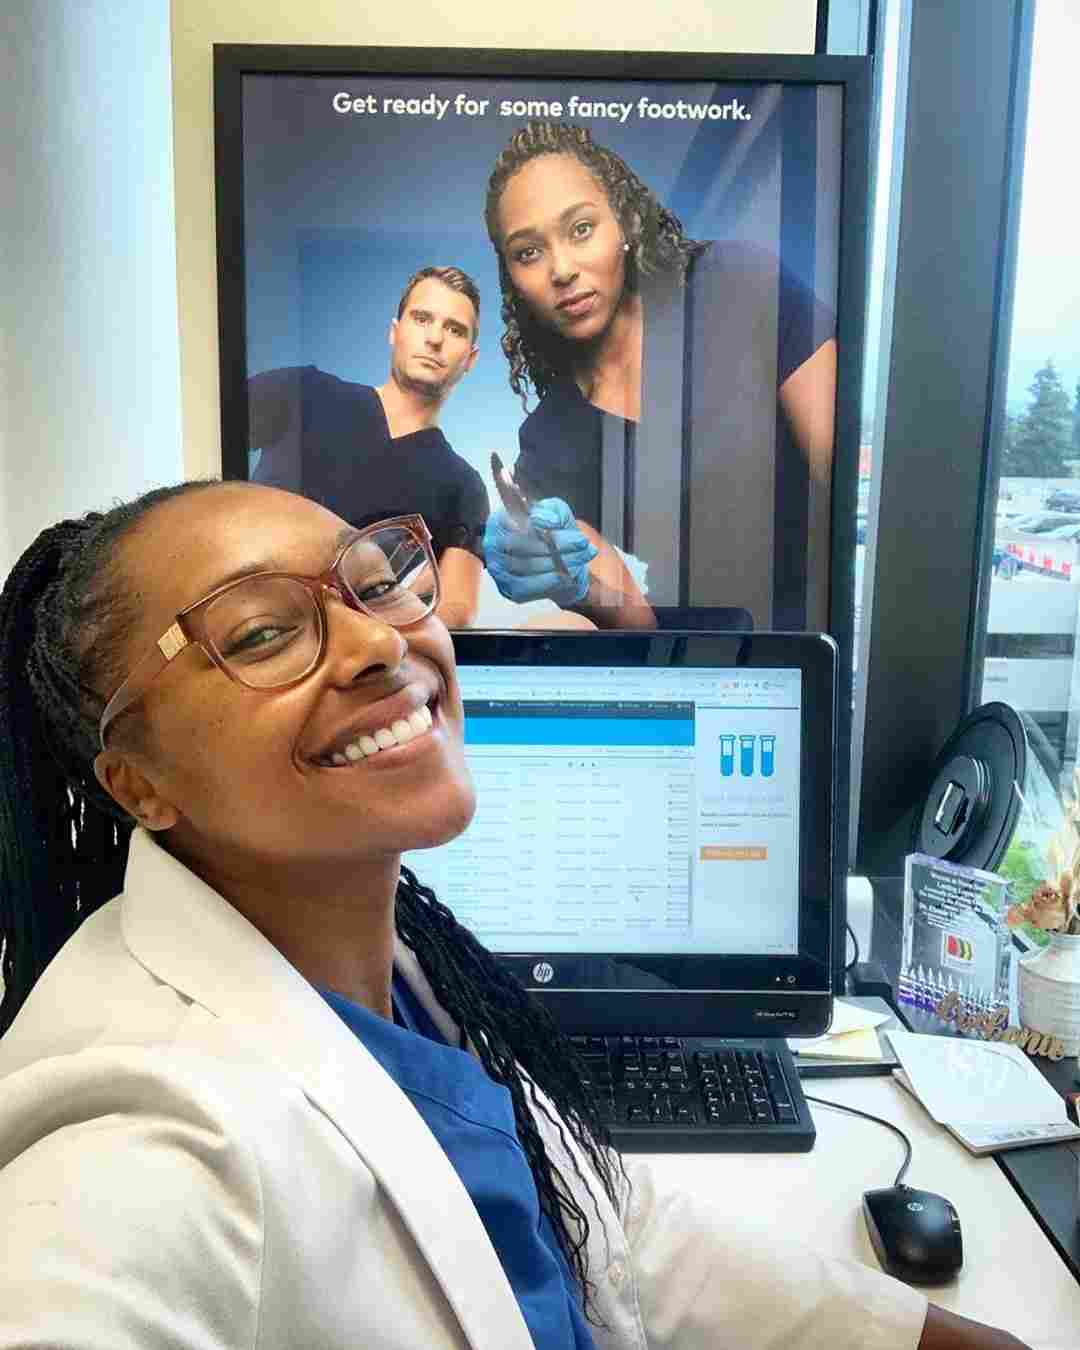 Dr. Ebonie Vincent and Dr. Bradley Schaeffer of My Feet Are Killing Me